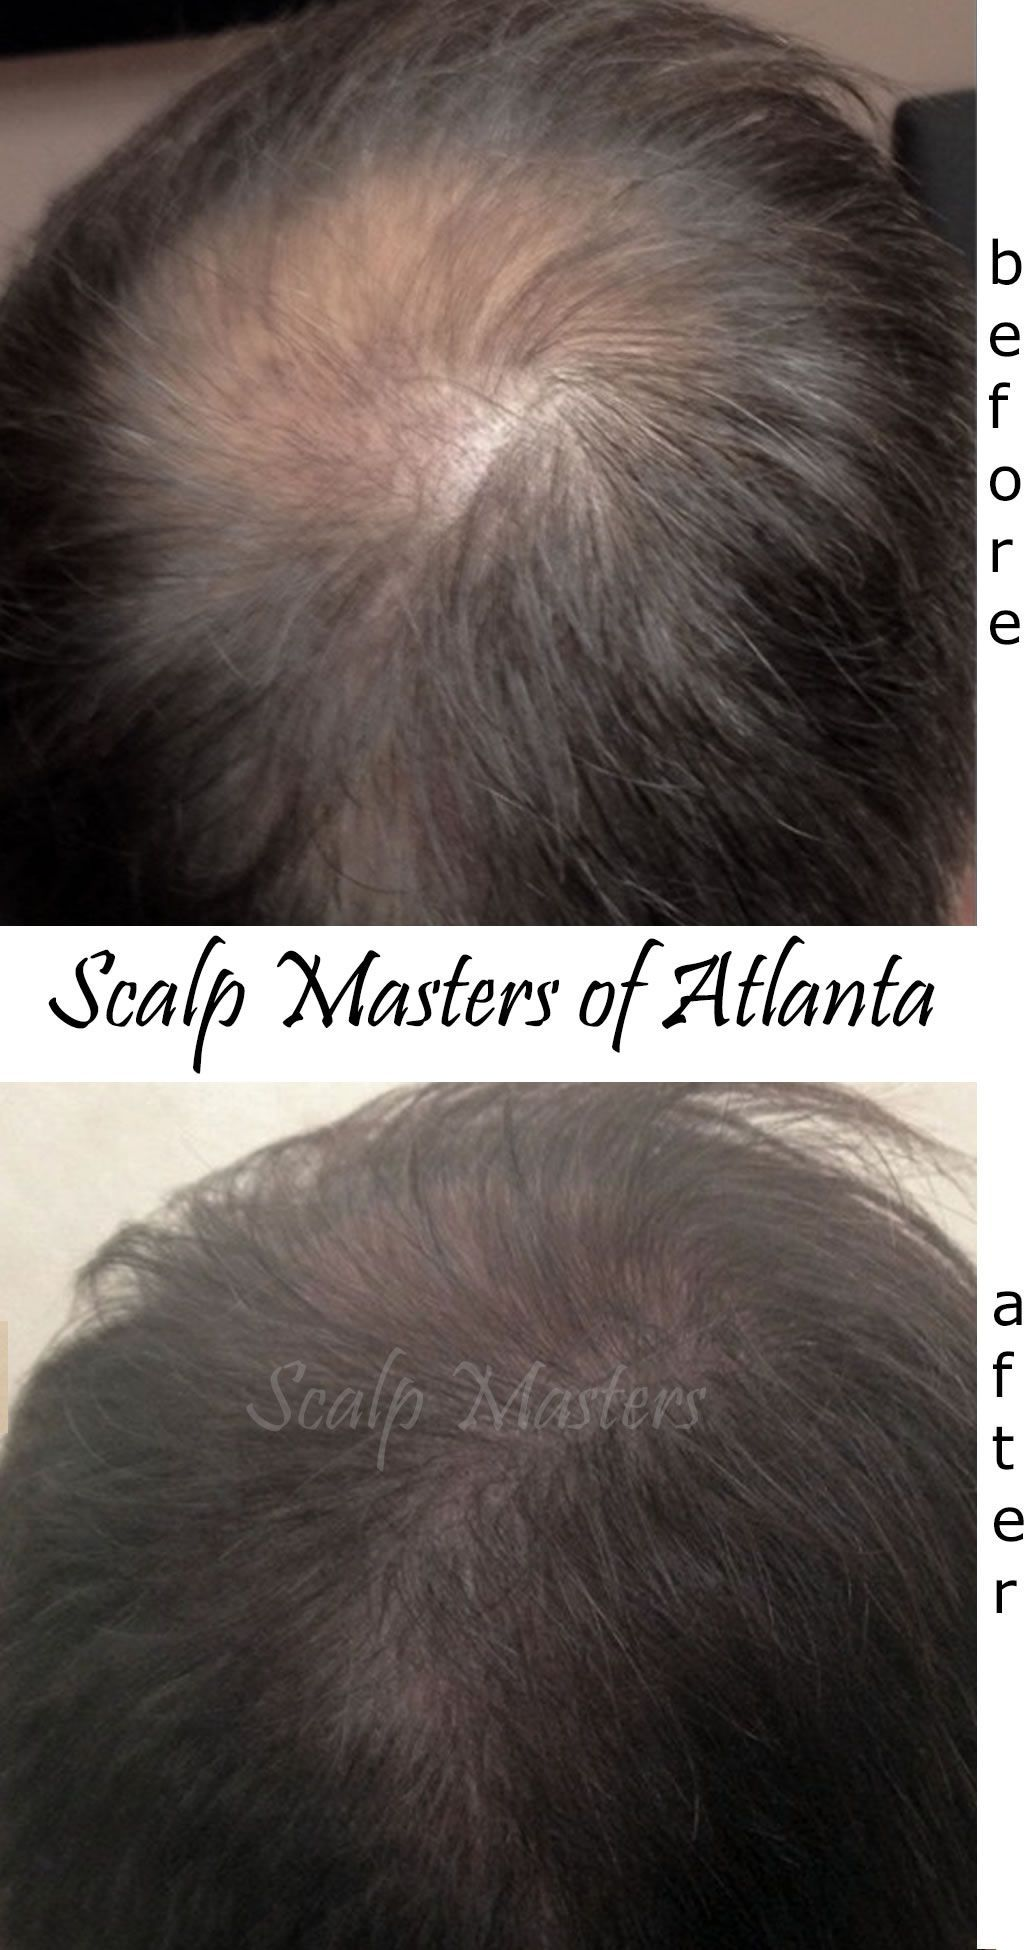 Atlanta crown balding solutions MalePatternBaldness  Male Pattern